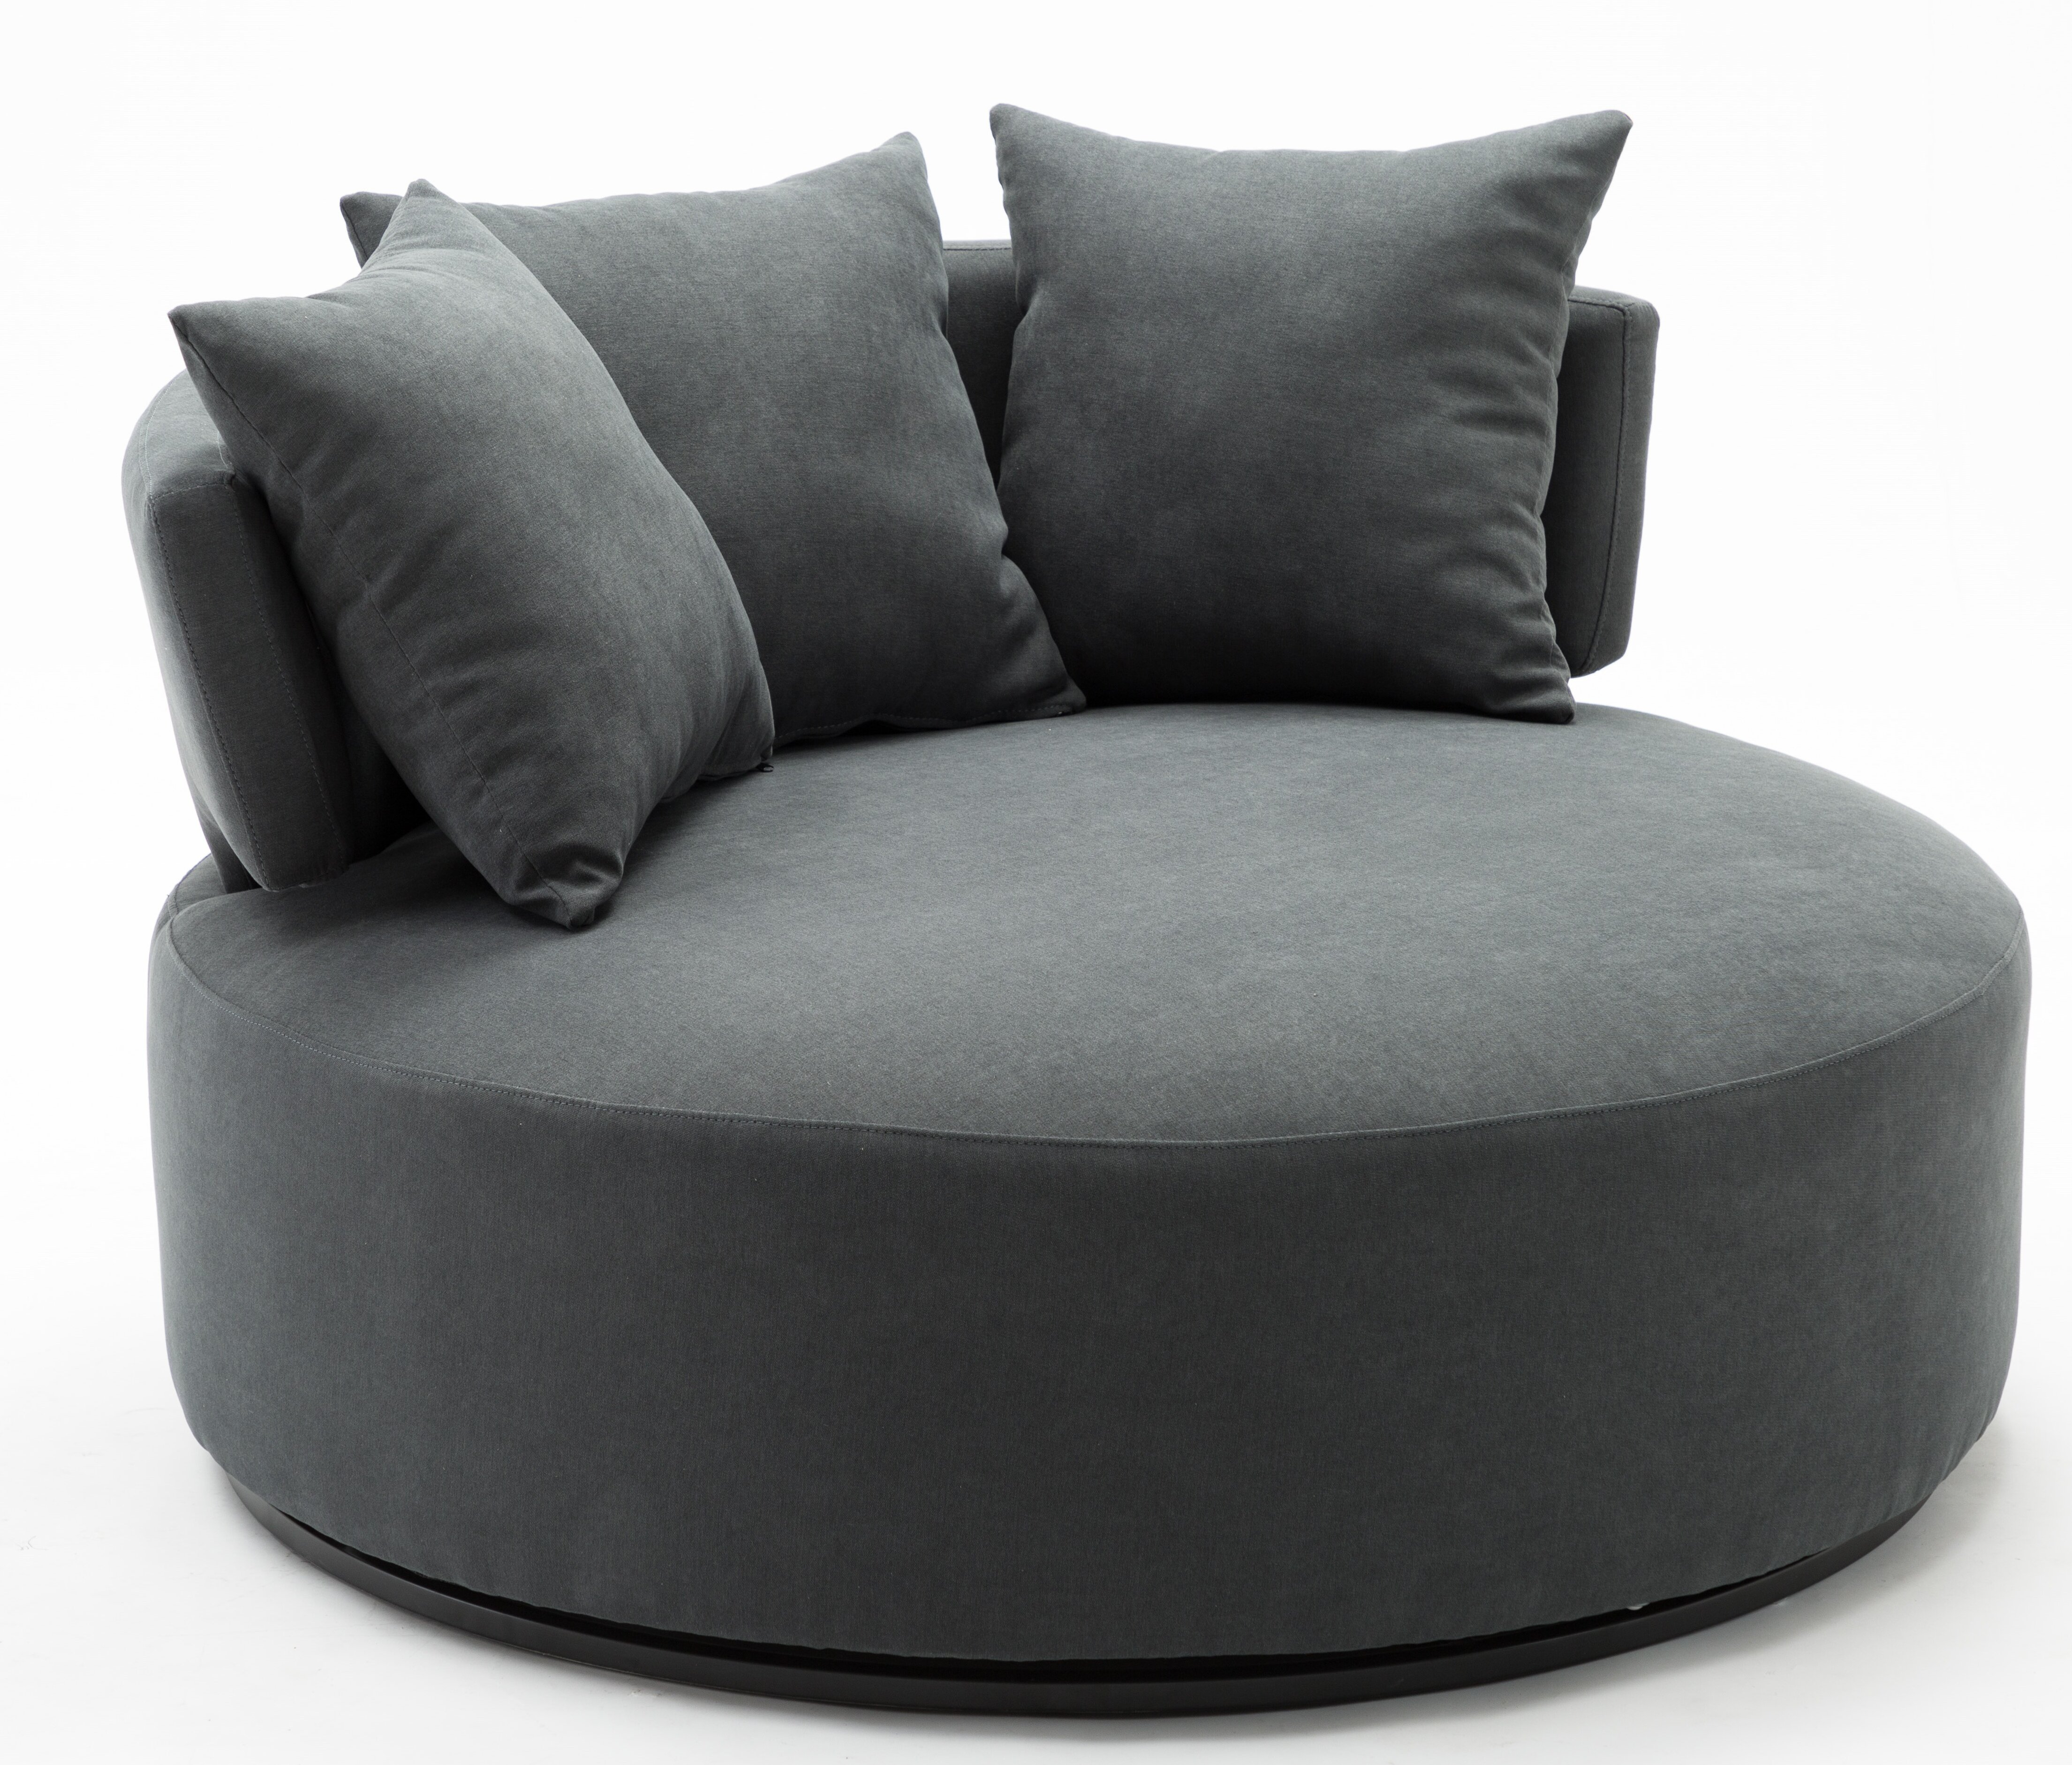 Reanne Swivel Chair And A Half